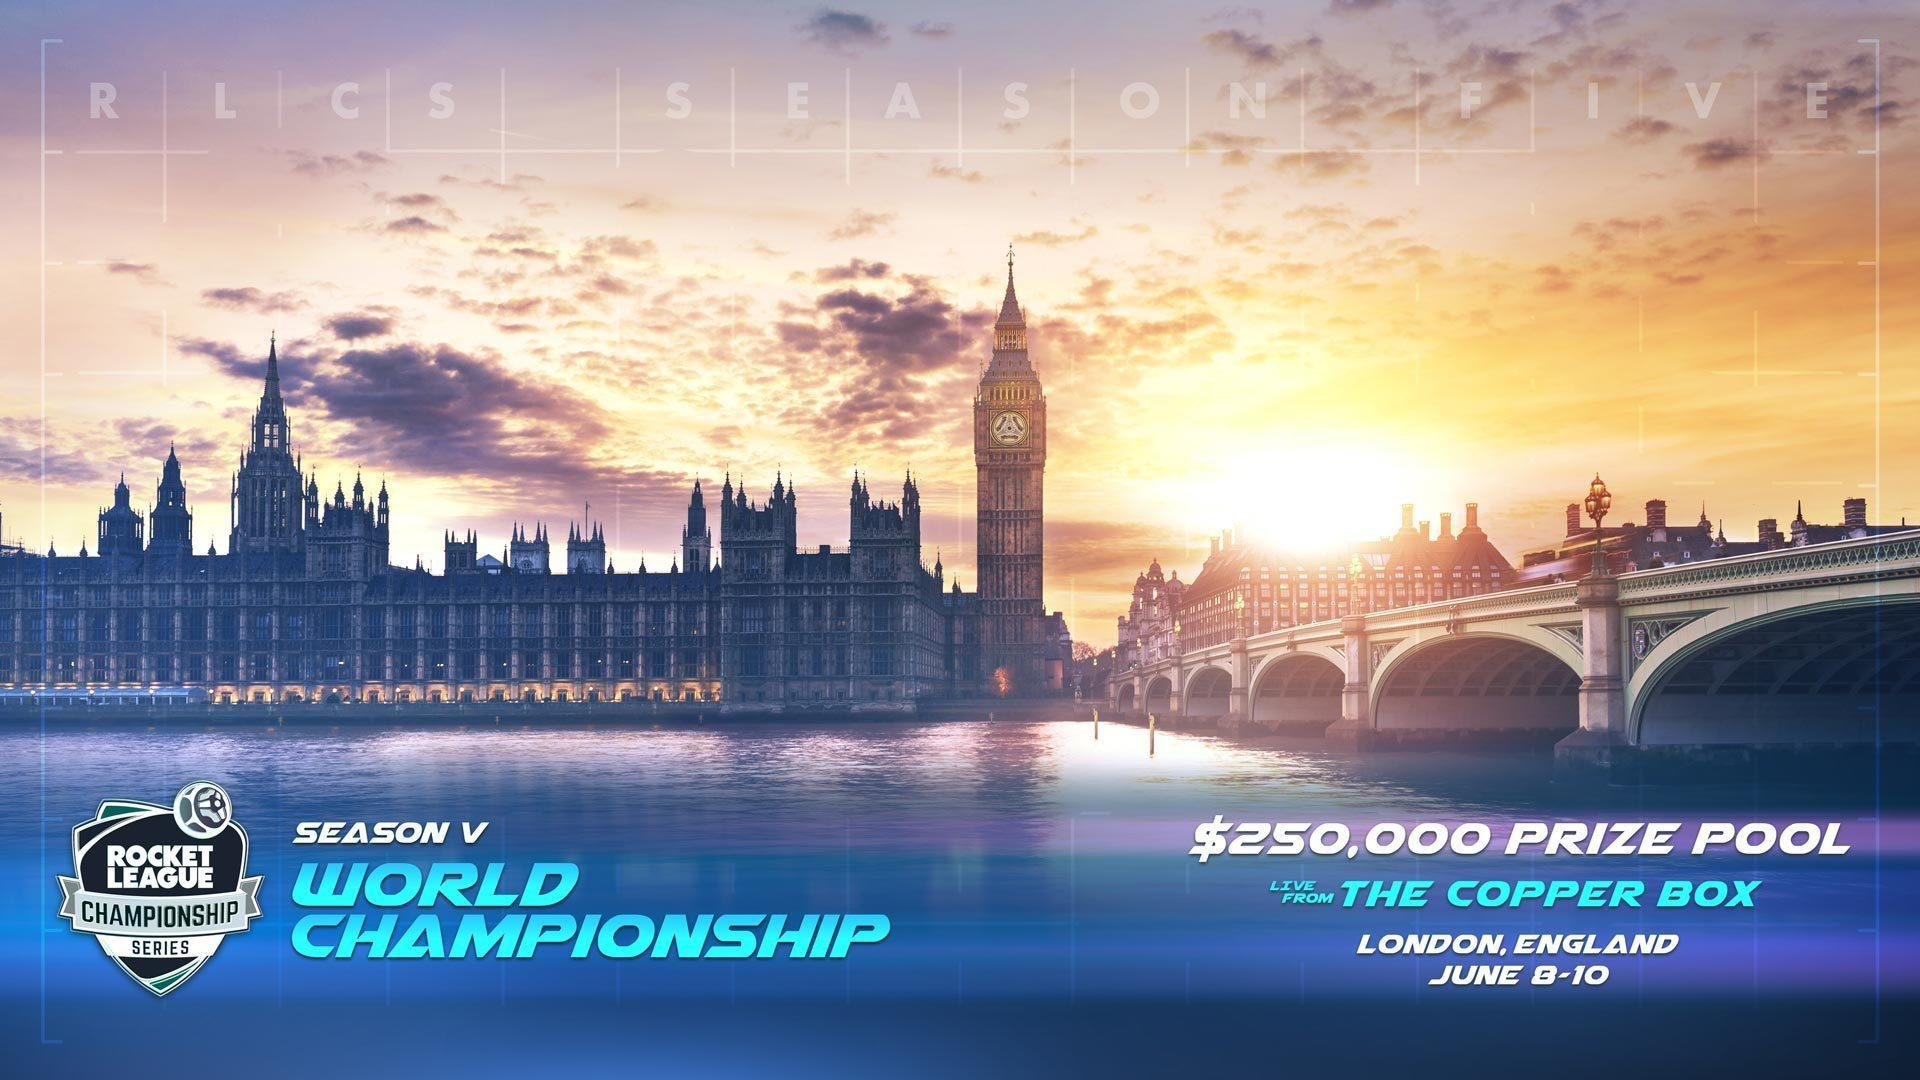 The RLCS World Championship Returns to Europe! Image